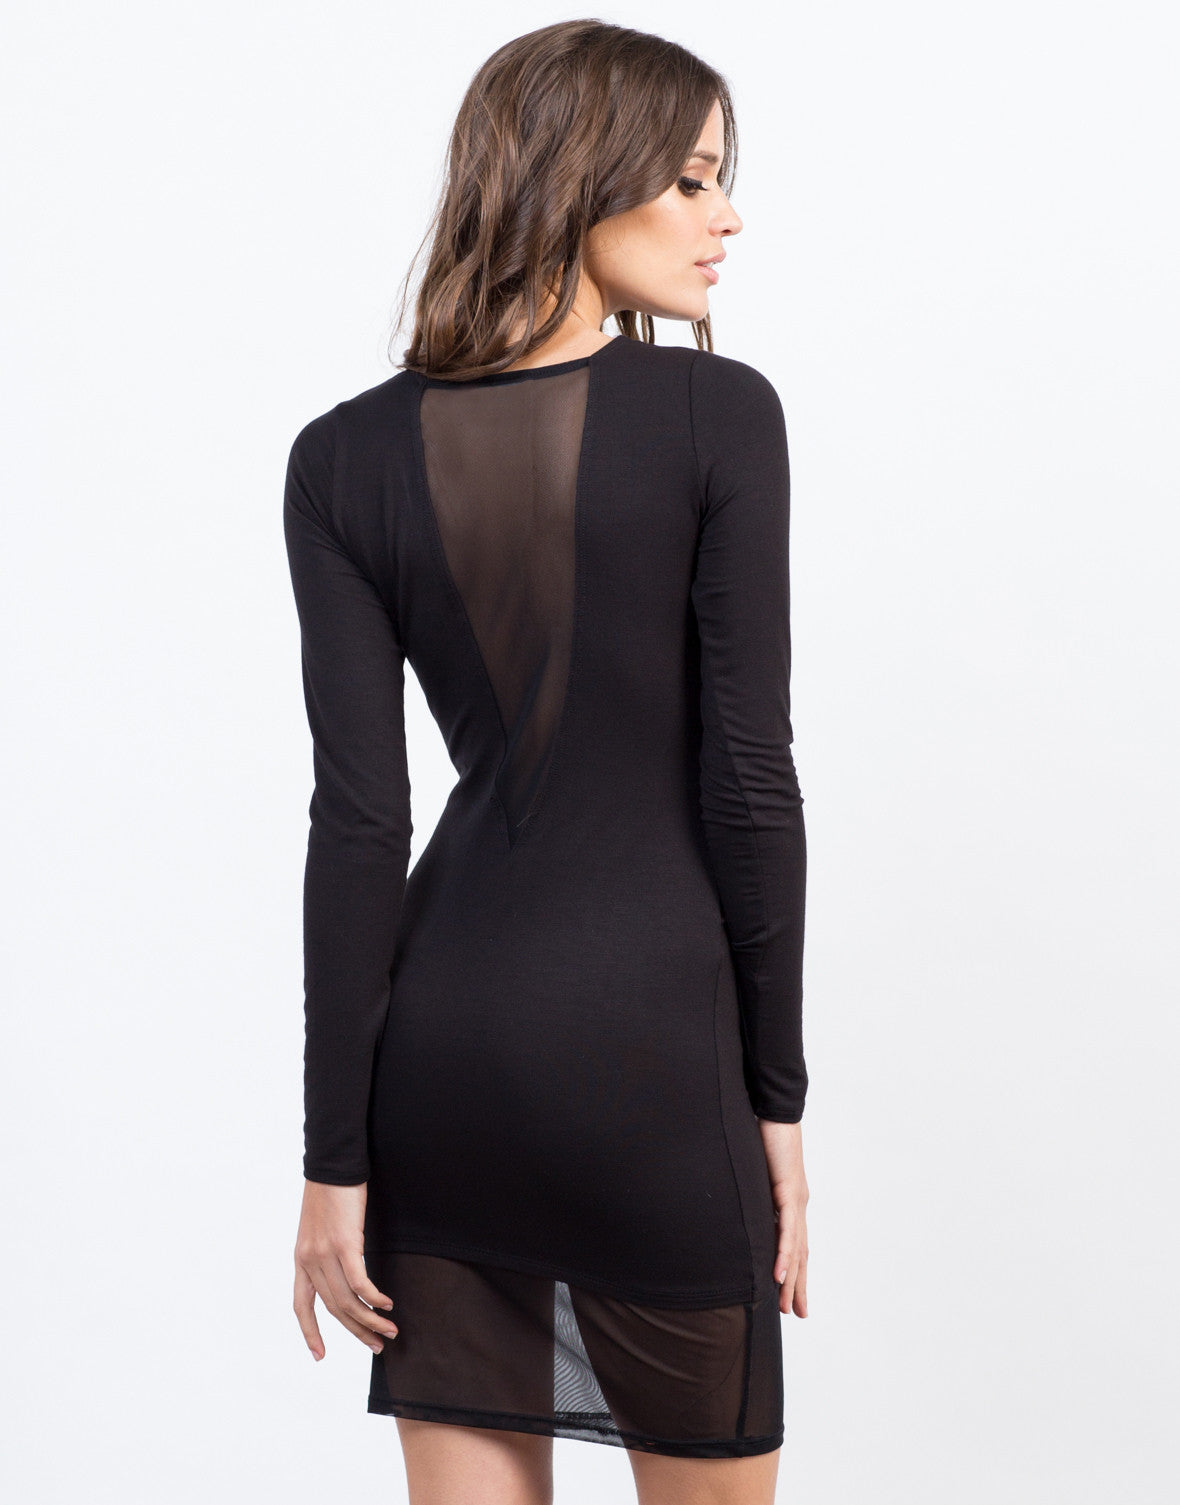 Mesh Contrast Dress - 2020AVE